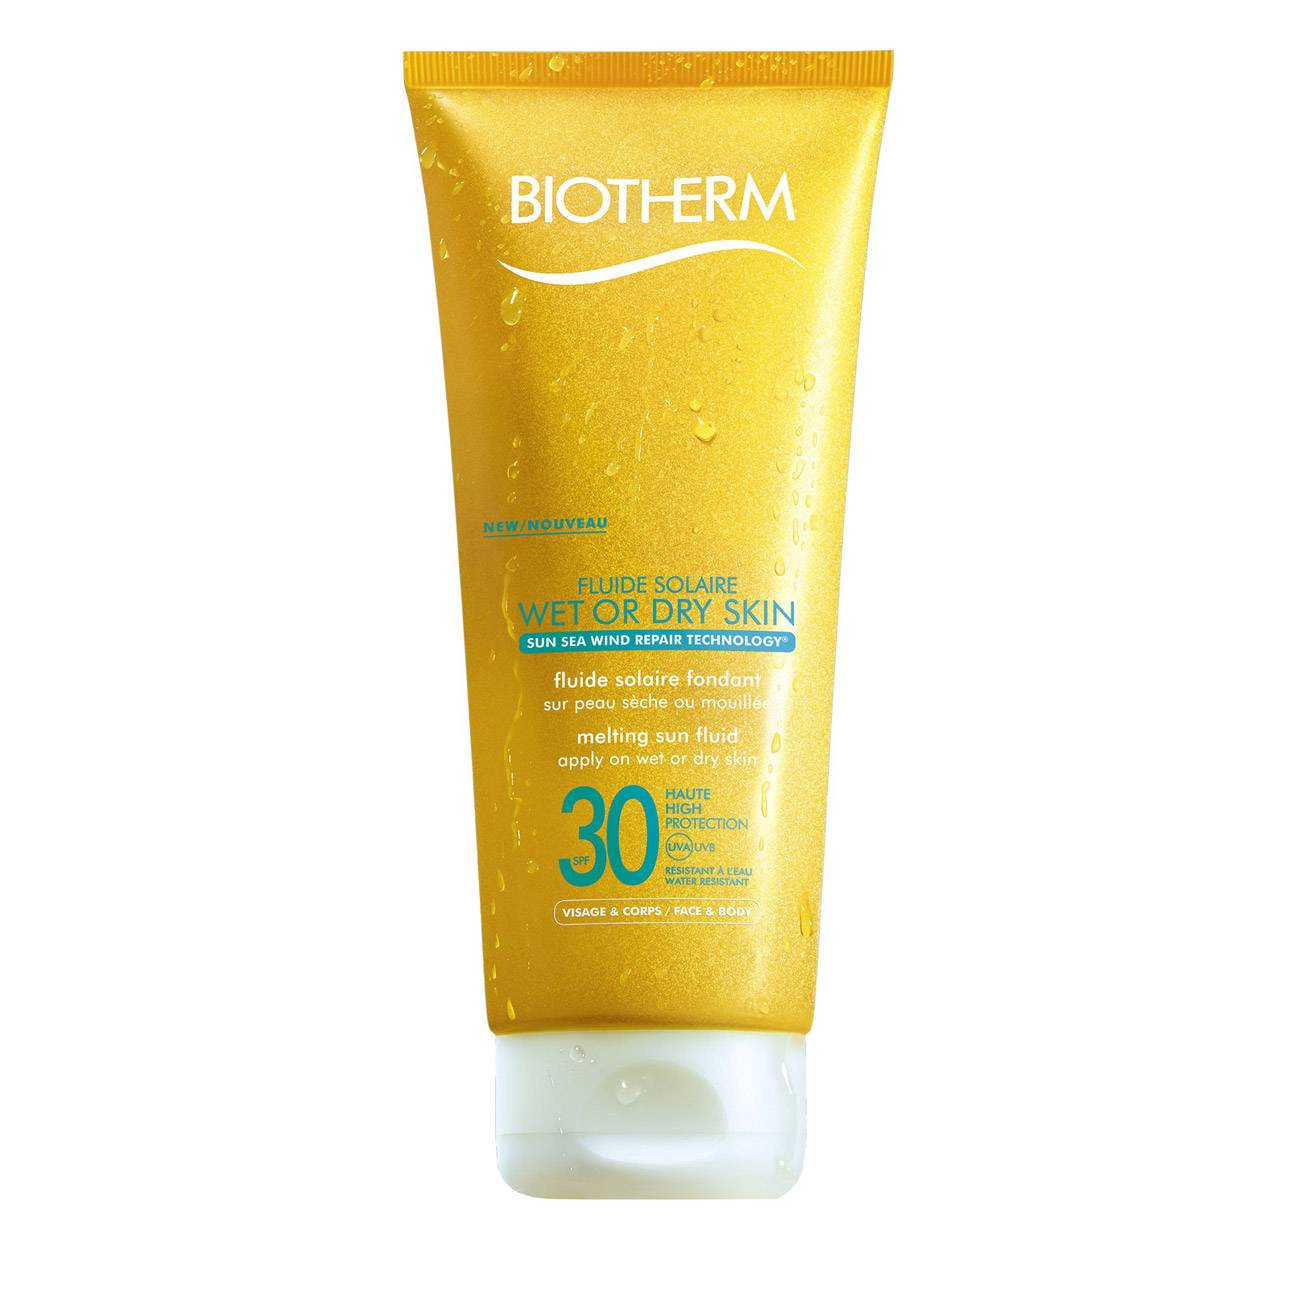 Body Fluide Solaire Wet Or Dry Skin 200ml